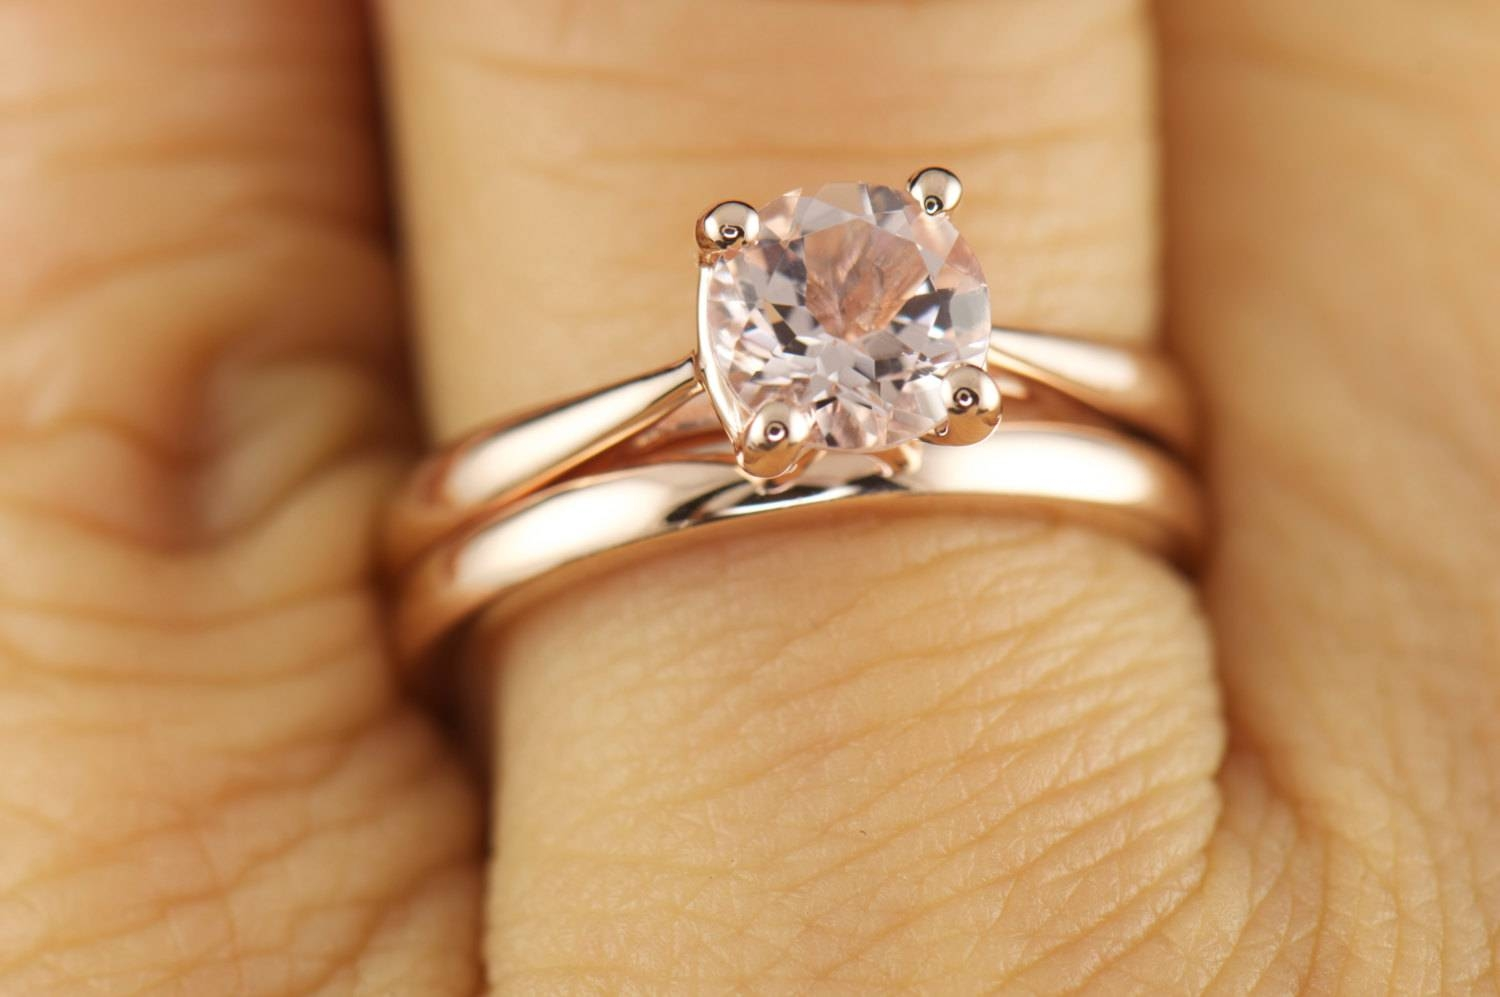 Talia & Kelsie Set Morganite Solitaire Engagement Ring In Pertaining To Recent 2Mm Rose Gold Wedding Bands (View 15 of 15)